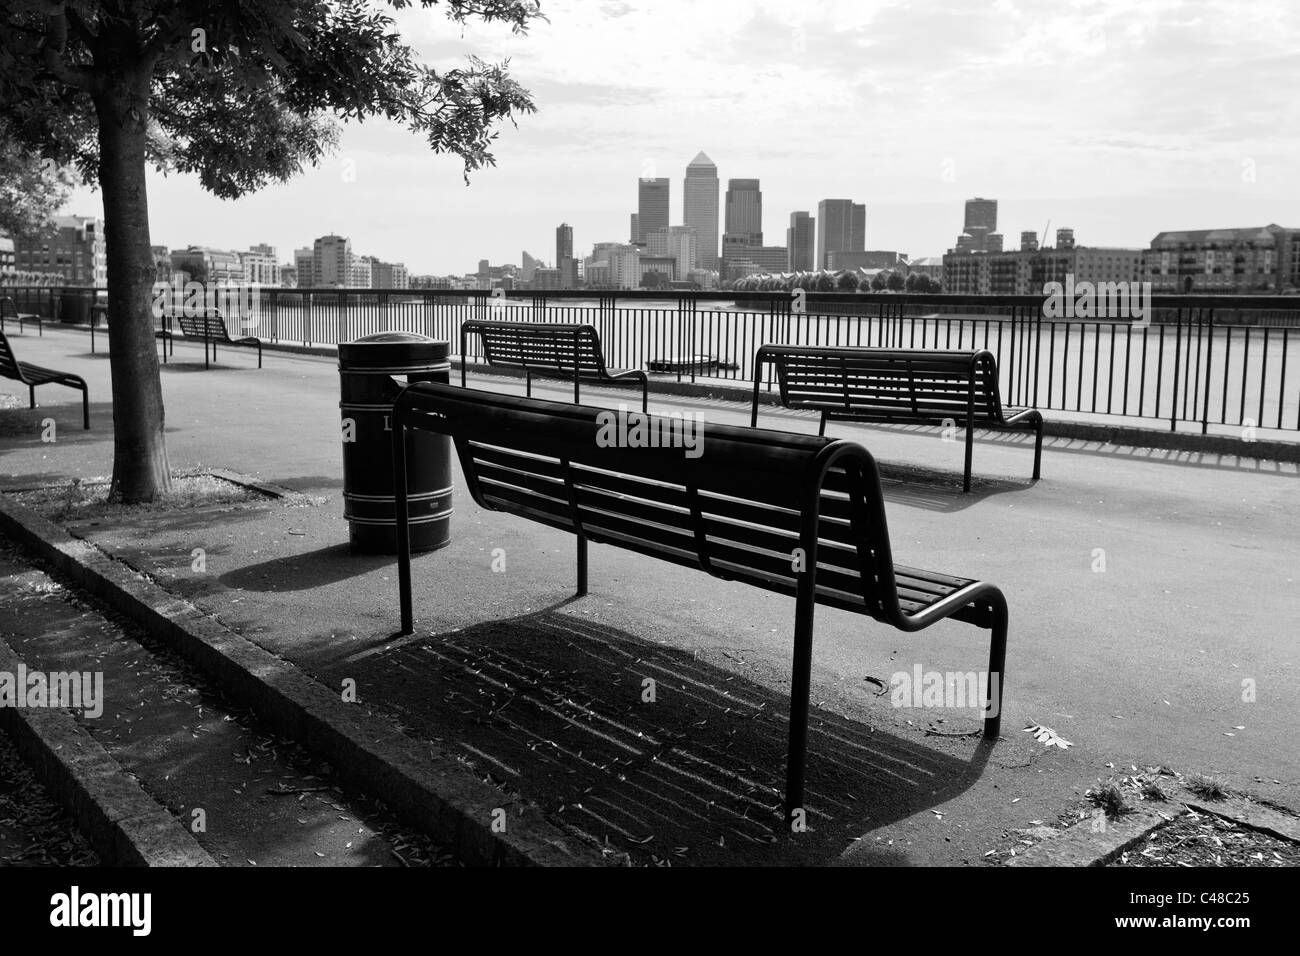 Canary Wharf from King Edward VII Memorial park, Tower Hamlets, London, UK - Stock Image